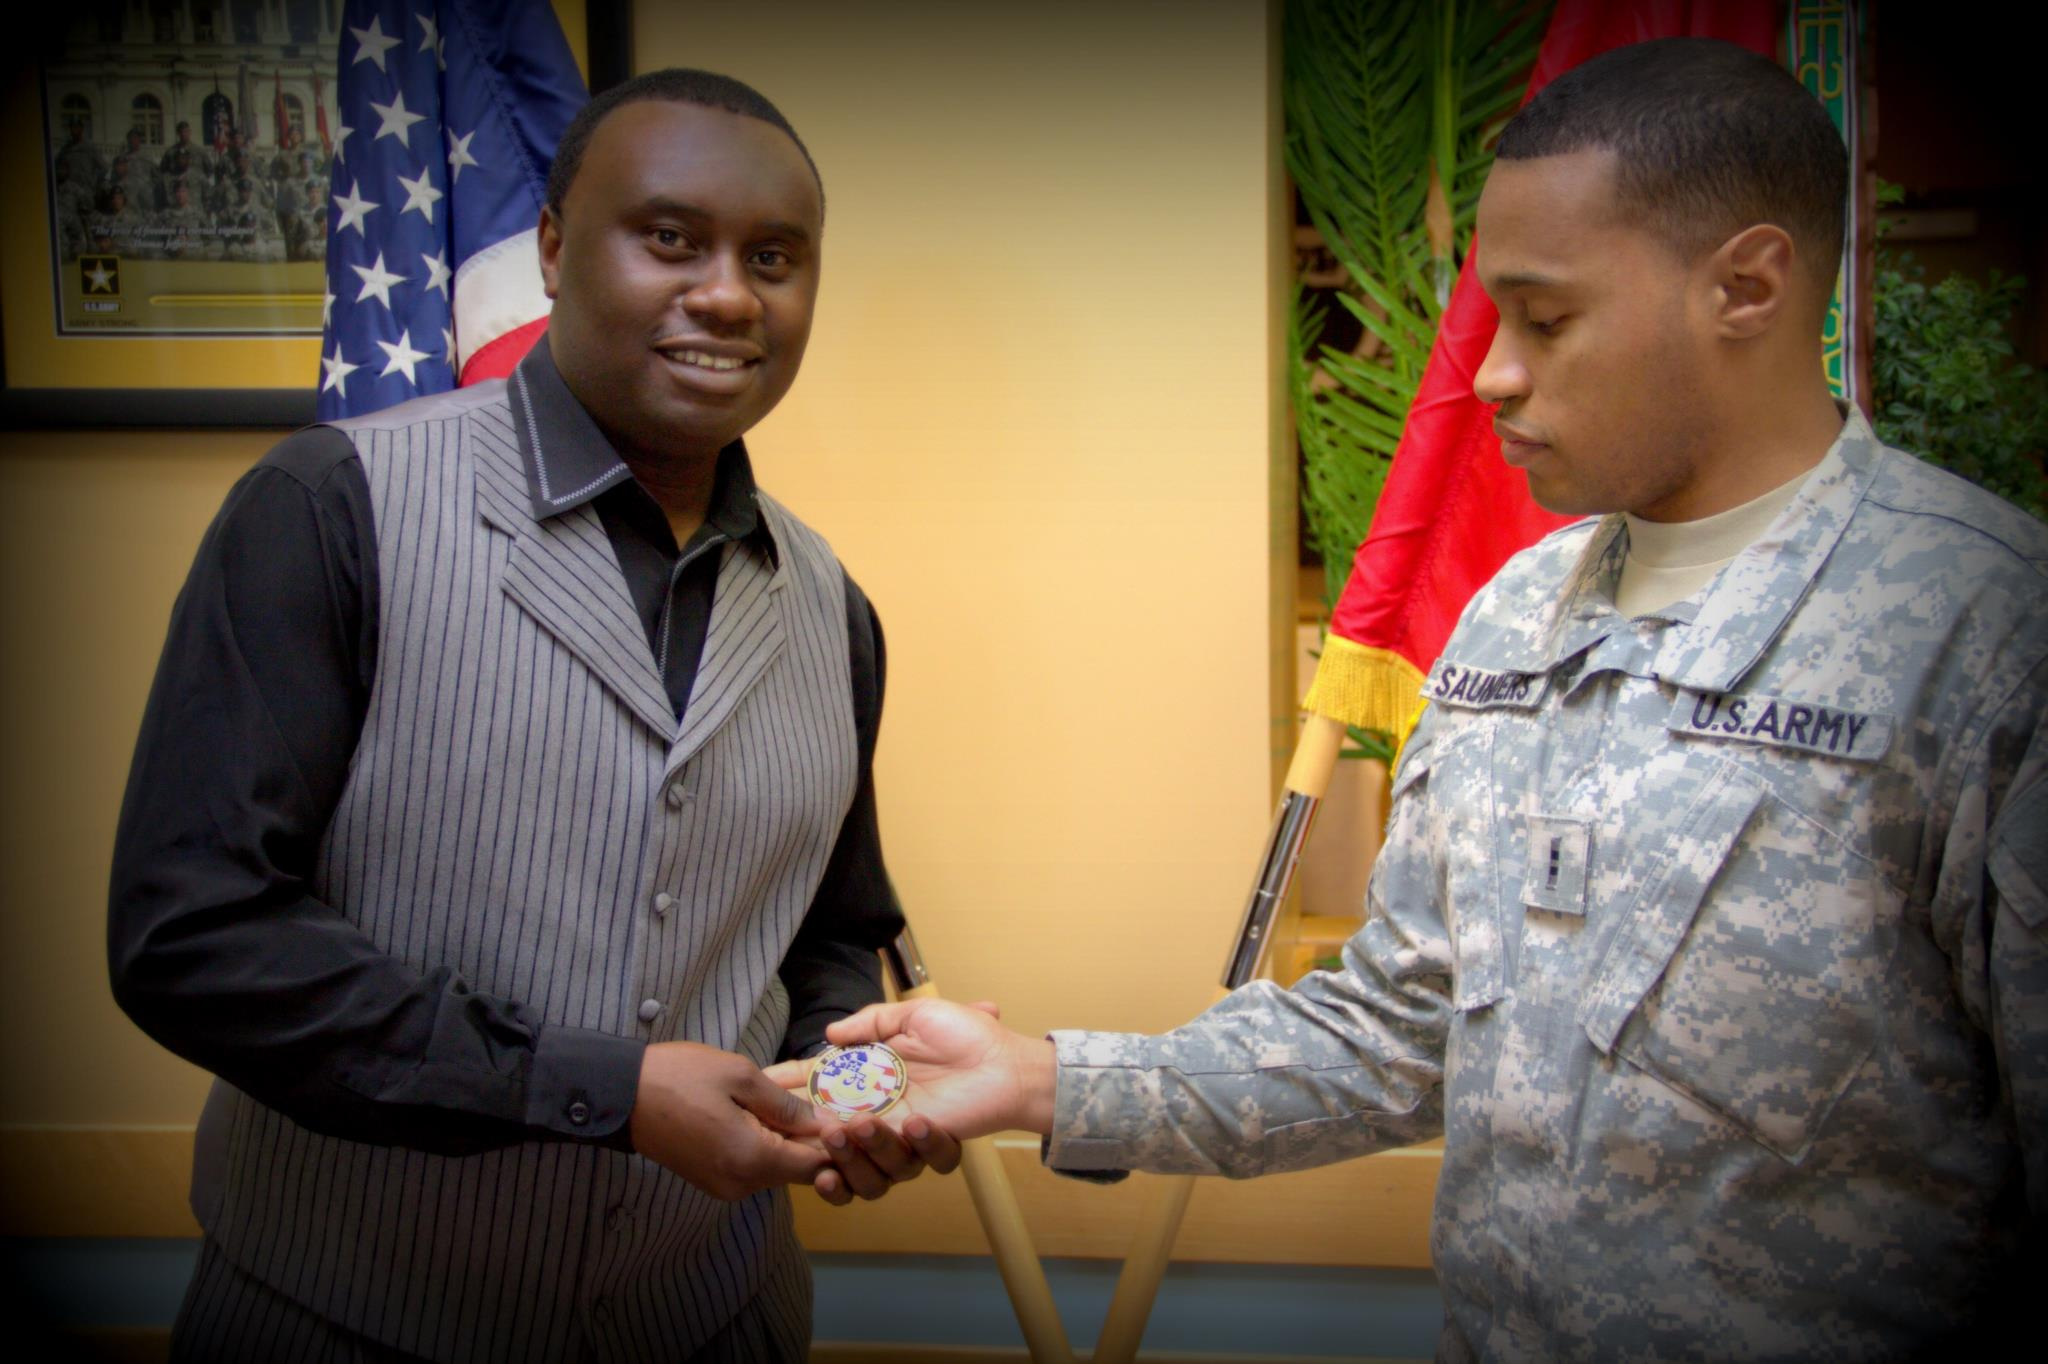 Davies Chirwa receiving a medal of honor for community leadership from The U.S Troops